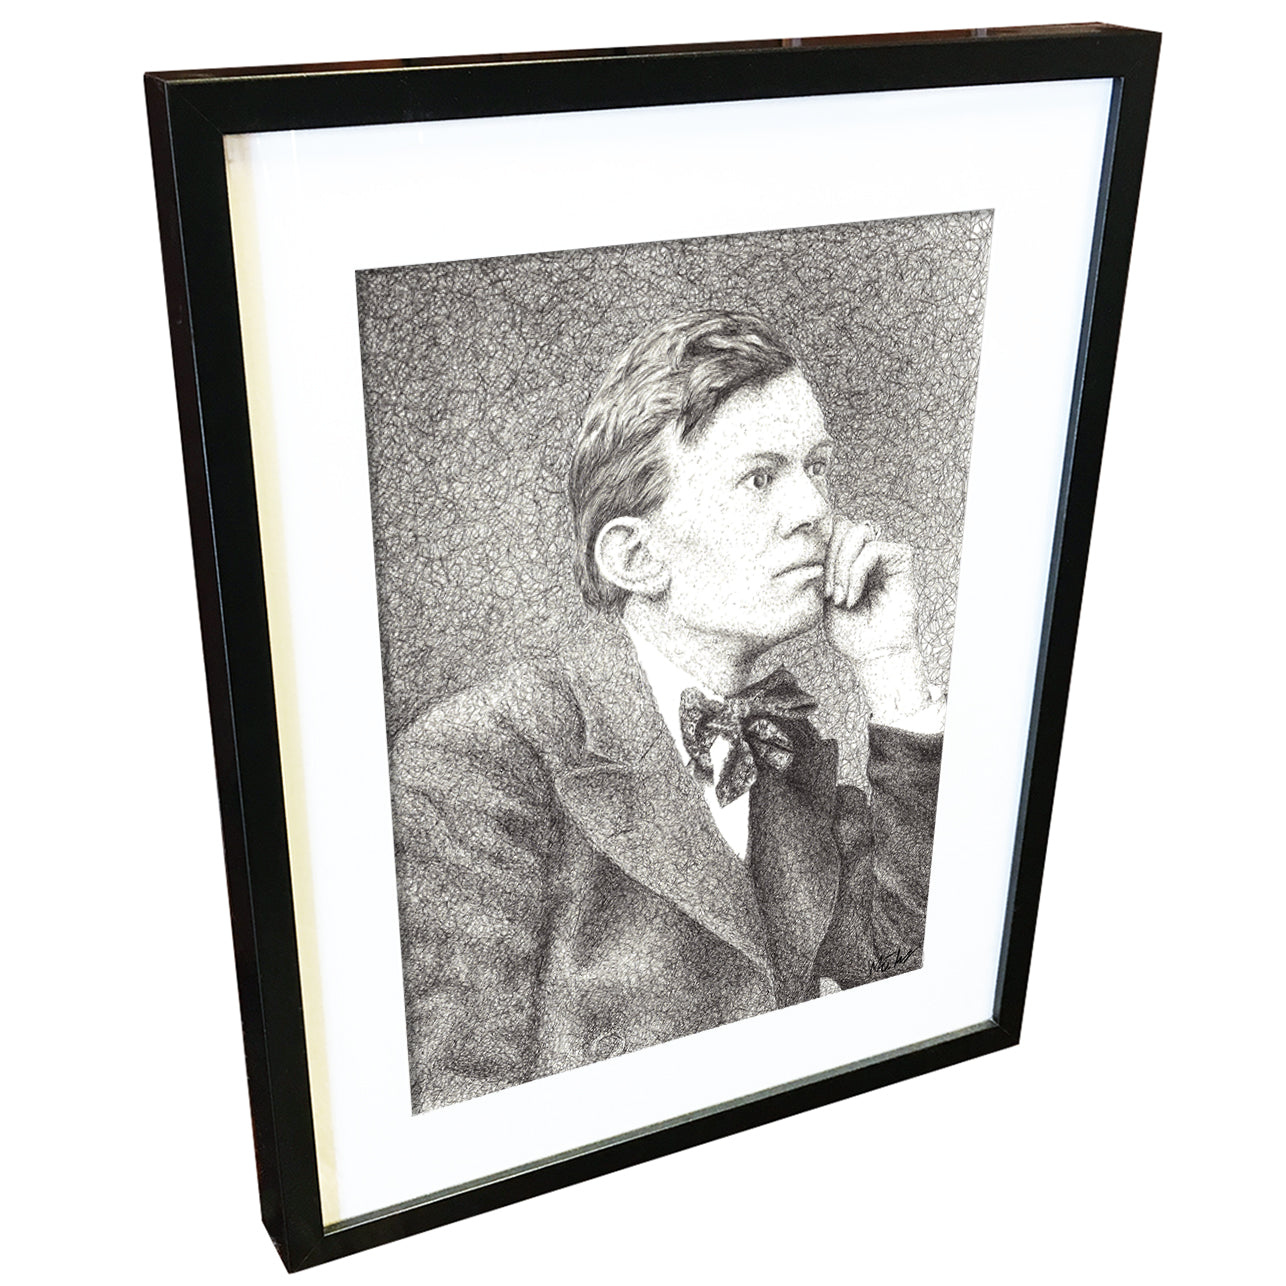 Aleister Crowley by Matt Hopper - signed fine art giclee print - Egoiste Gallery